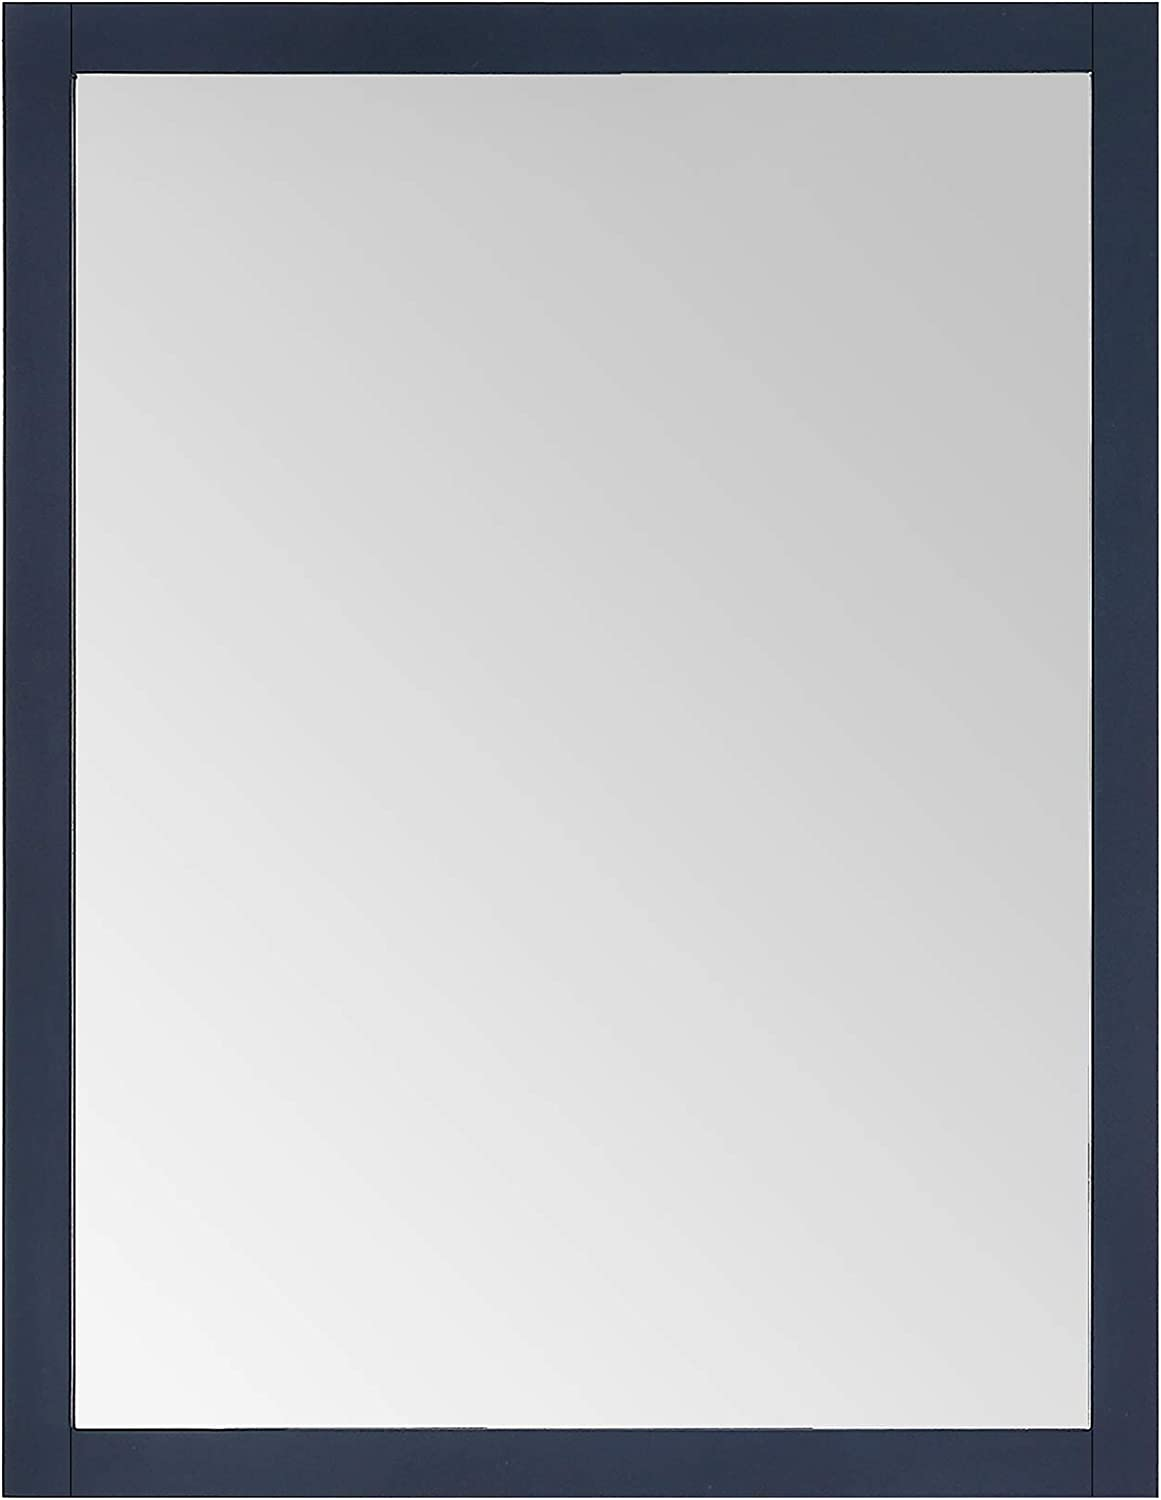 Ove Decors Midnight Blue Maya 28x36 Wall Mount Contemporary Rectangle Mirror in Dove Grey finish